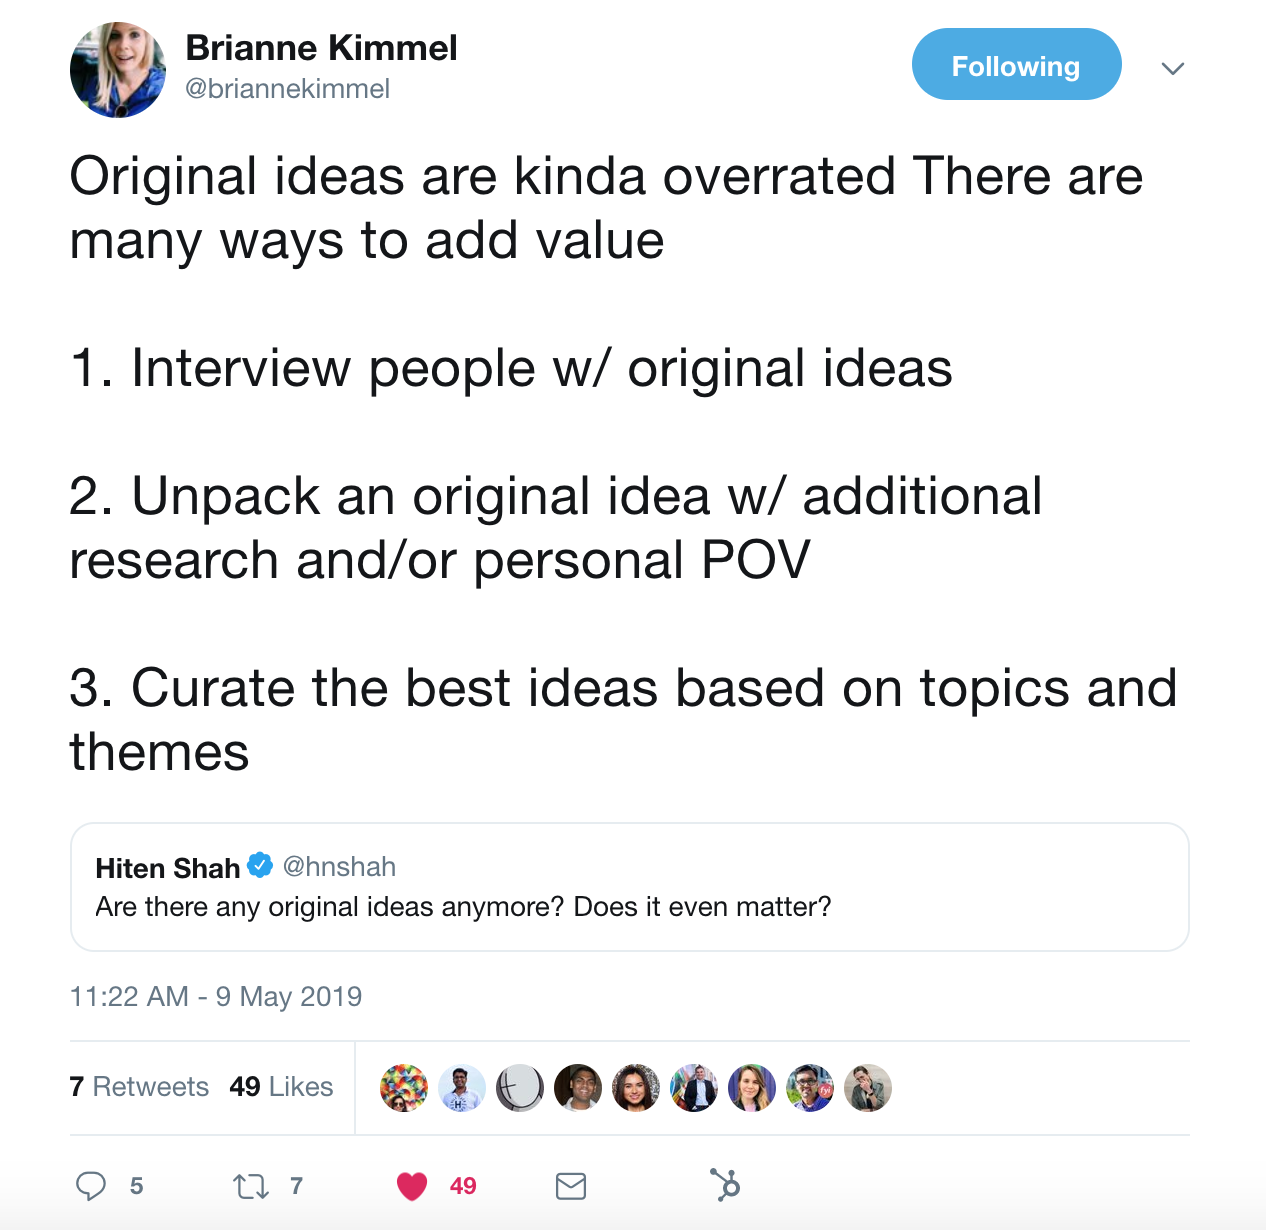 this is a tweet from brianne kimmel that says: original ideas are kinda overrated. there are many ways to add value